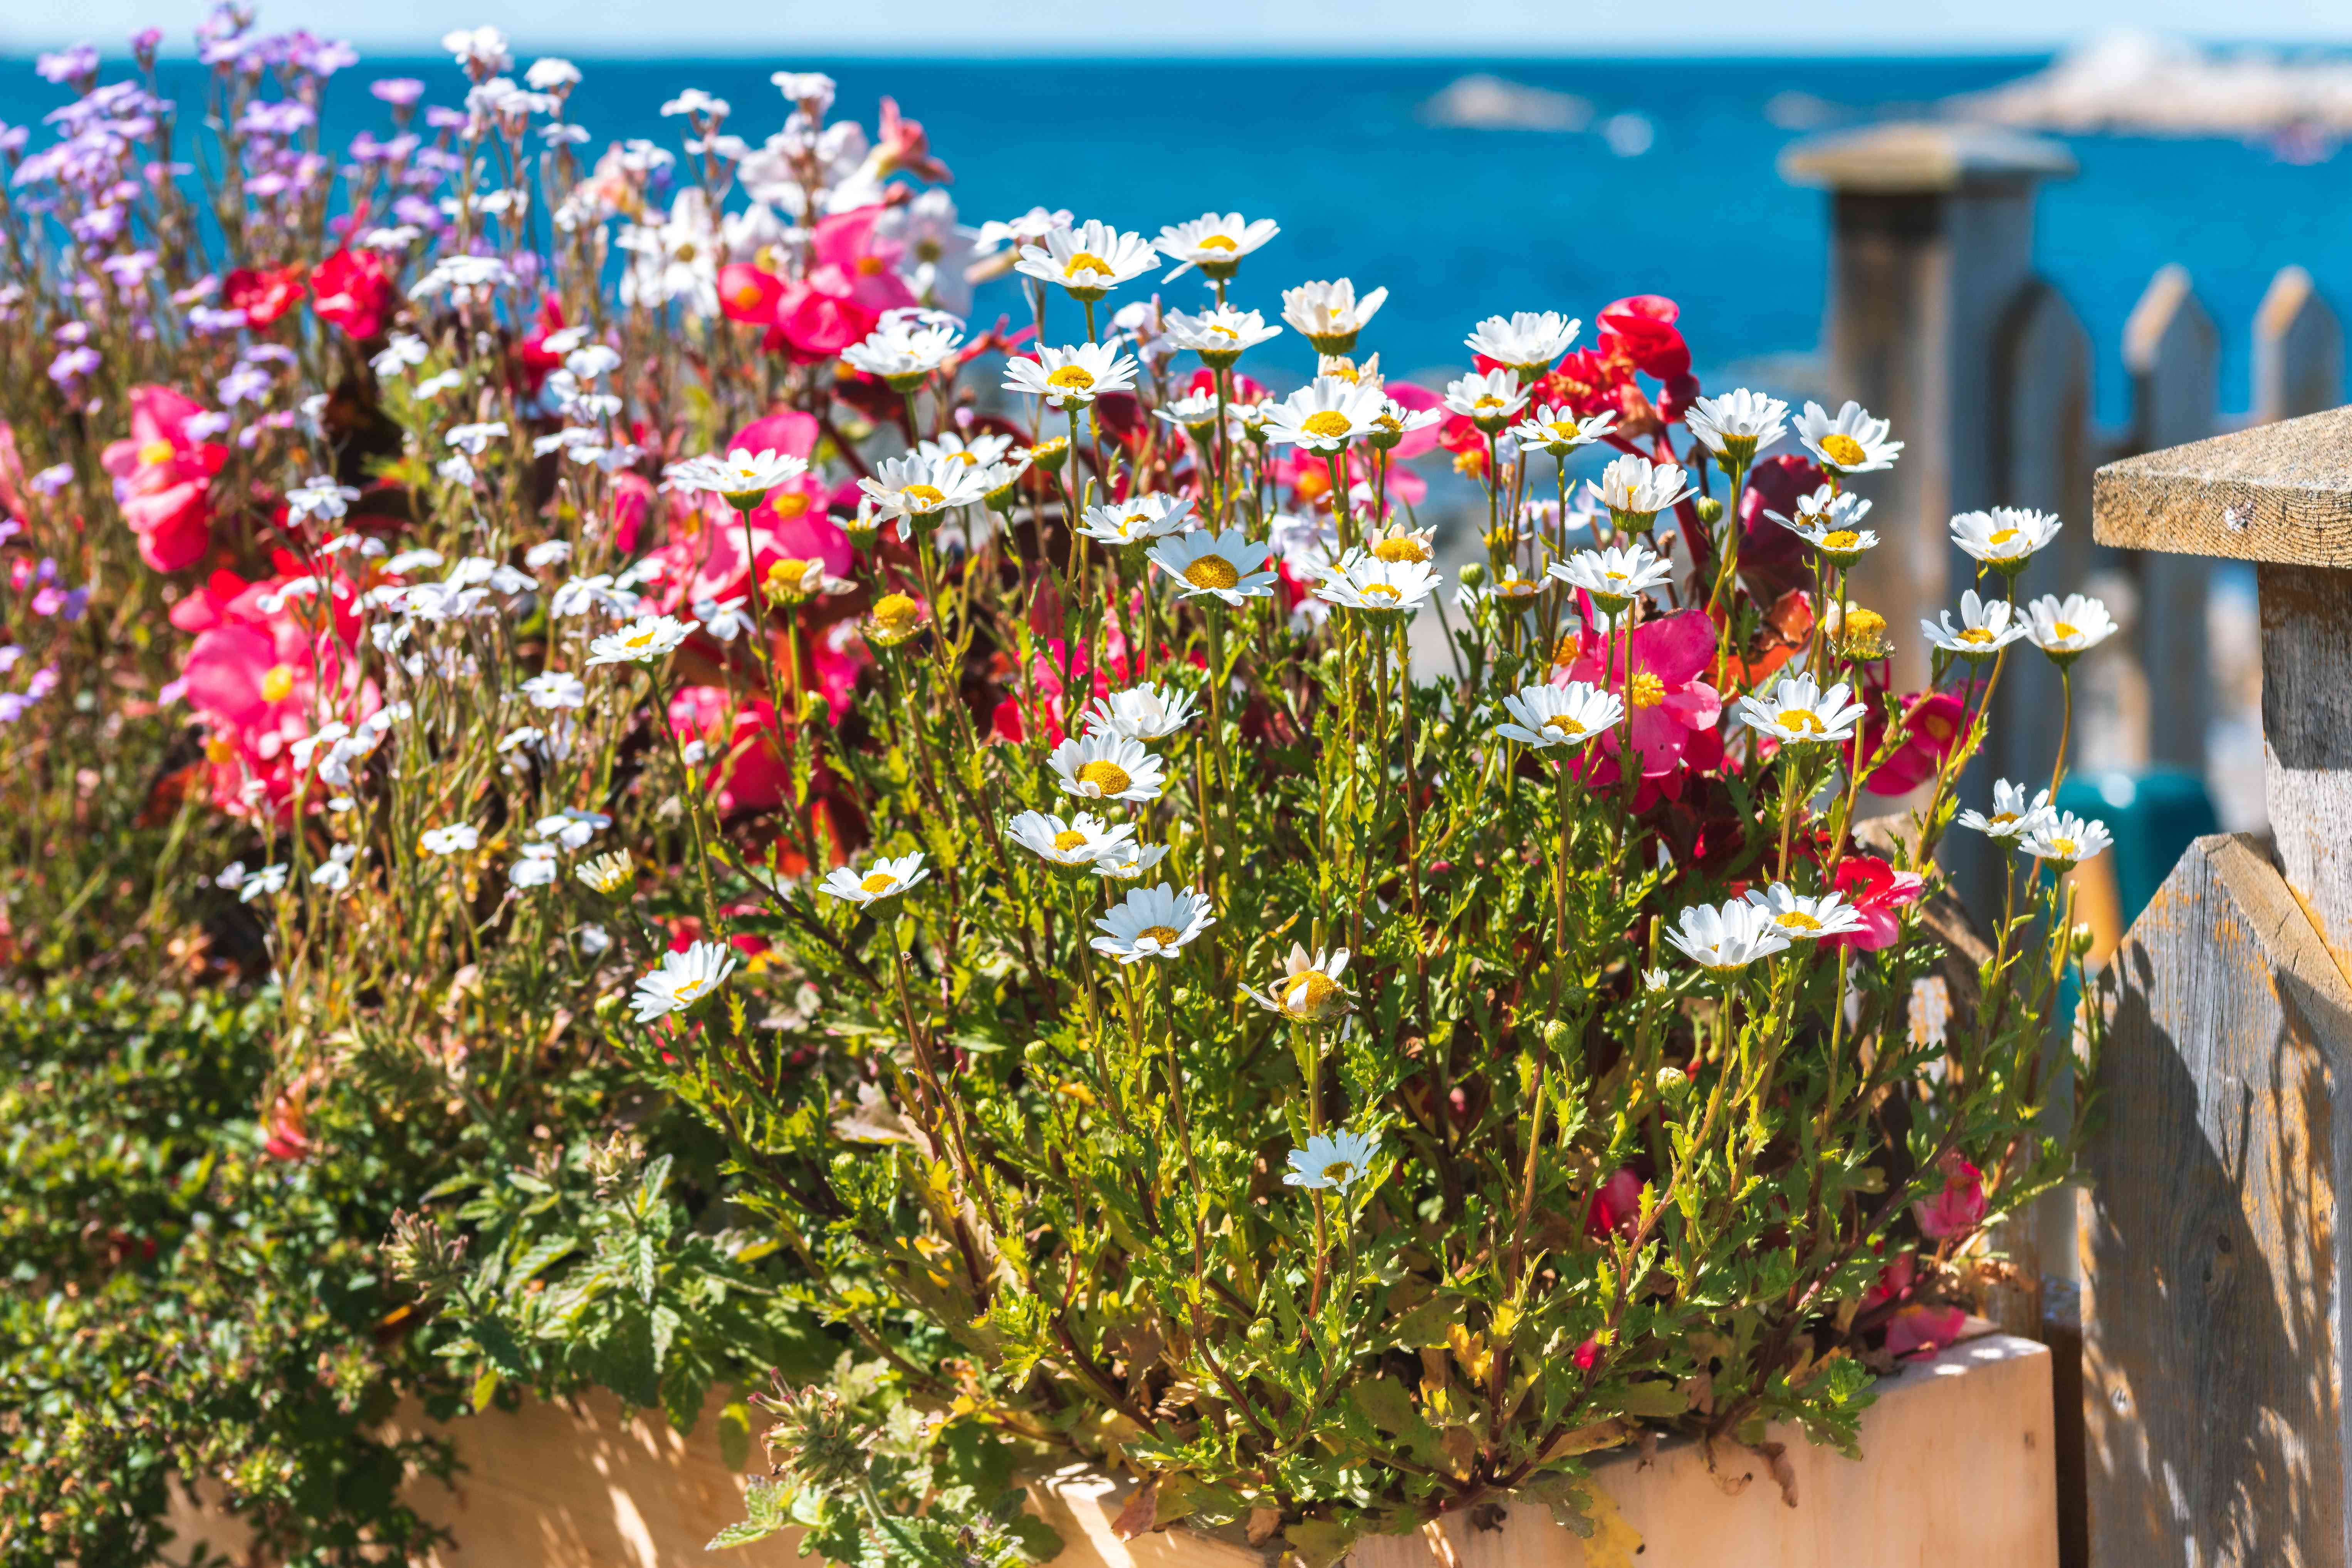 Montauk daisies in a container